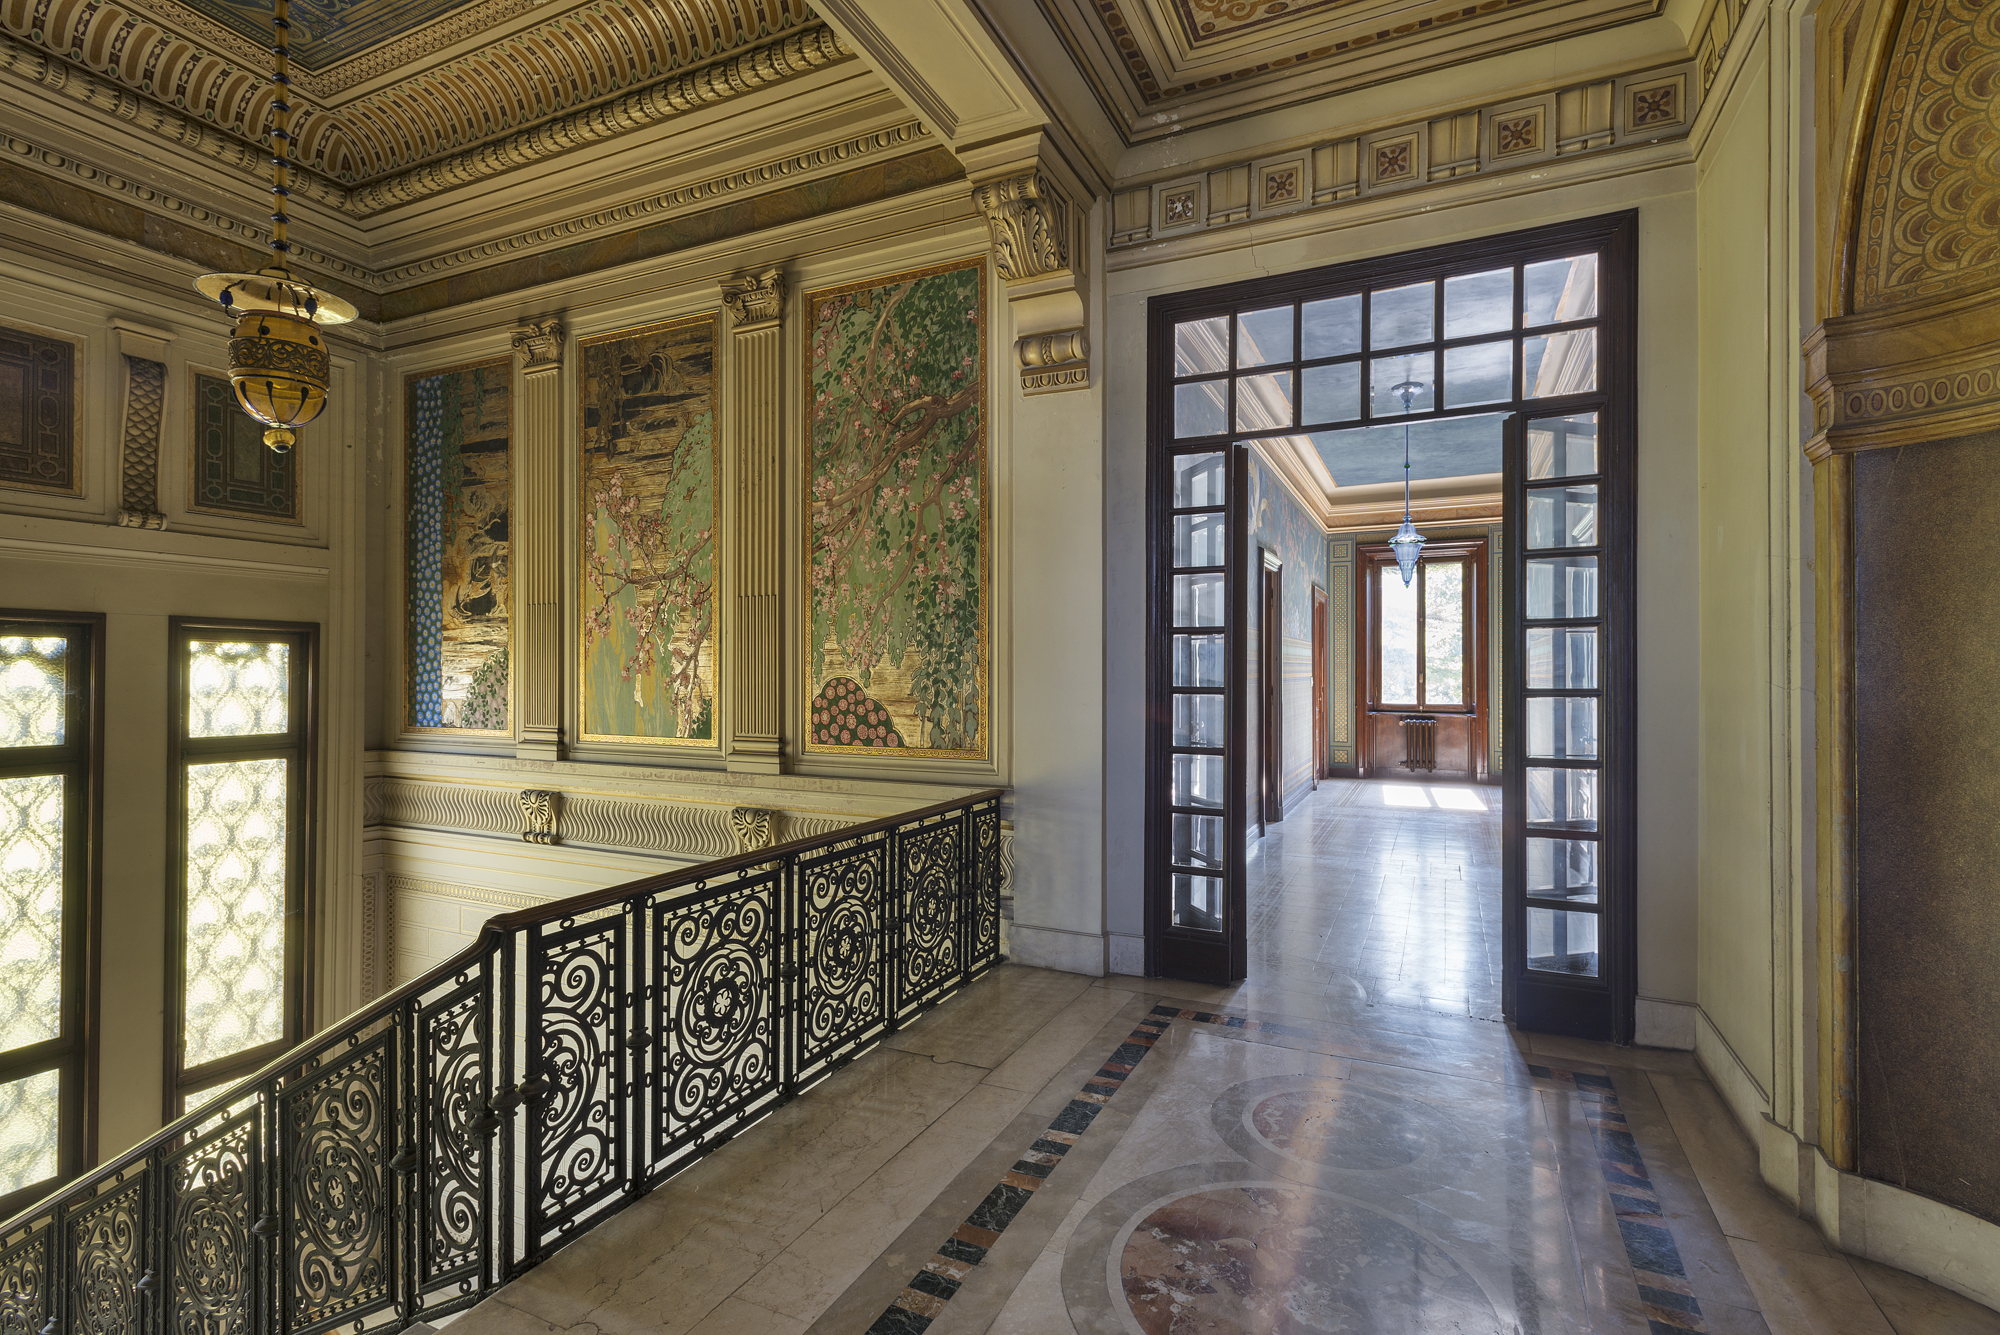 Additional photo for property listing at Beautiful Art Nouveau villa viale 1° Maggio Salsomaggiore Terme, Parma 43125 Italien